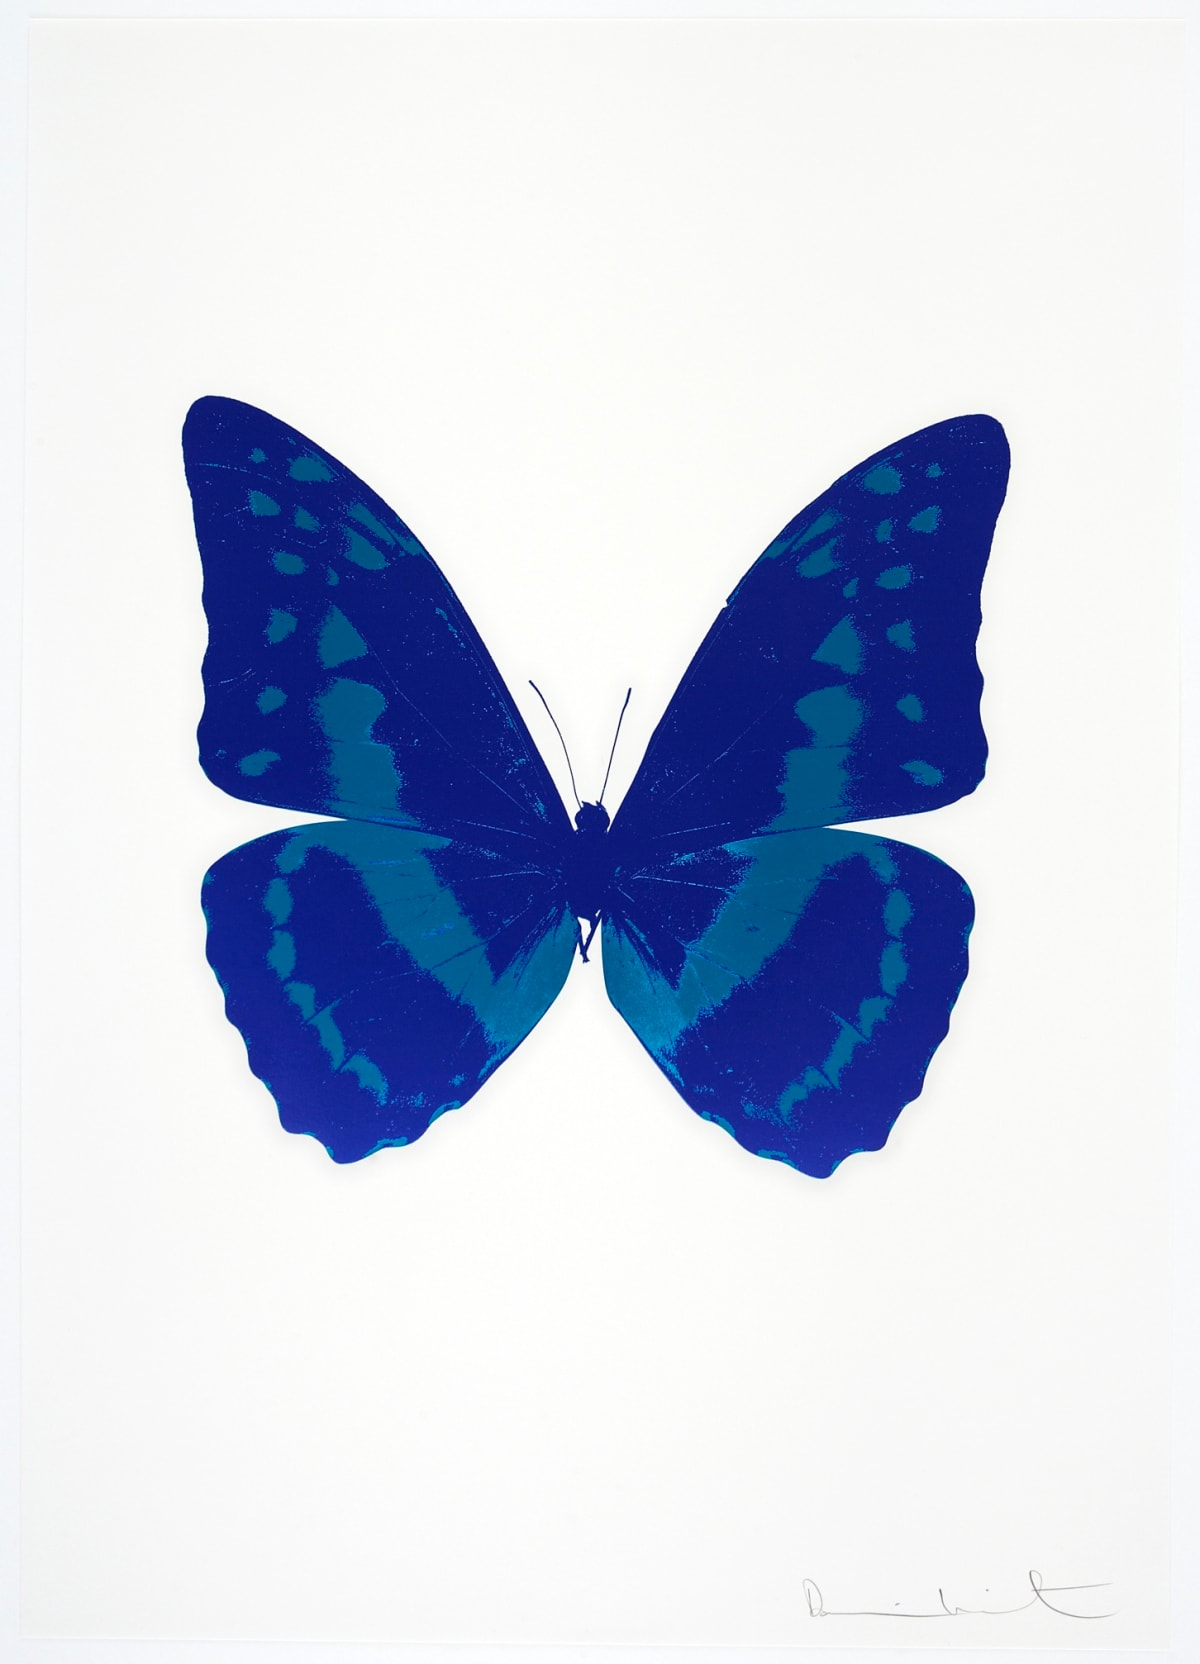 Damien Hirst The Souls III - Westminster Blue/Turquoise, 2010 2 colour foil block on 300gsm Arches 88 archival paper. Signed and numbered. Published by Paul Stolper and Other Criteria 72 x 51cm OC7904 / 660-7 Edition of 15